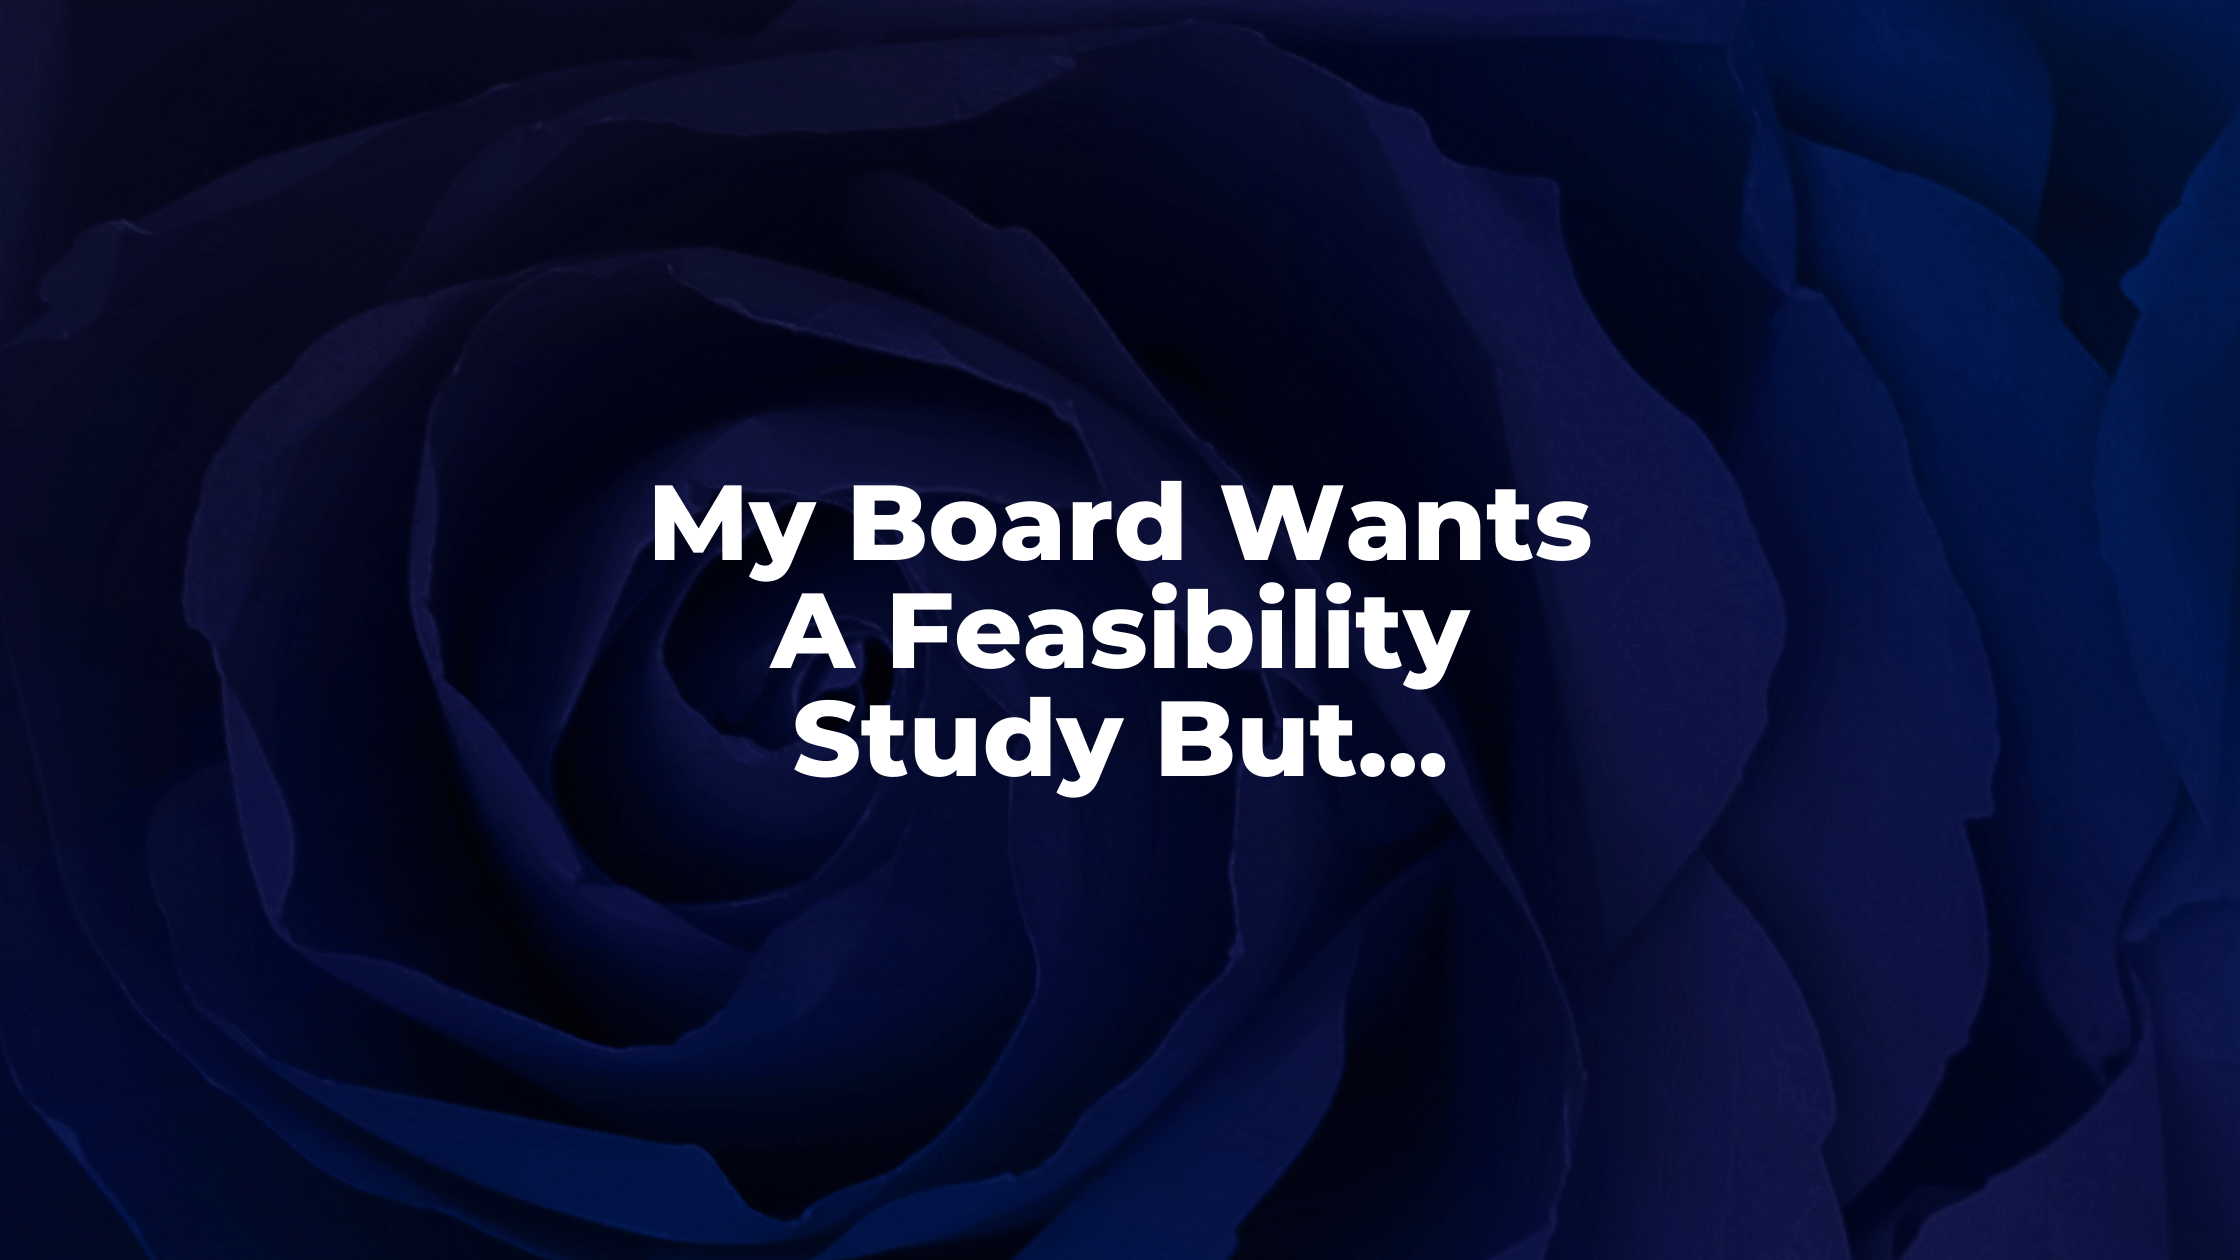 My Board Wants A Feasibility Study But...